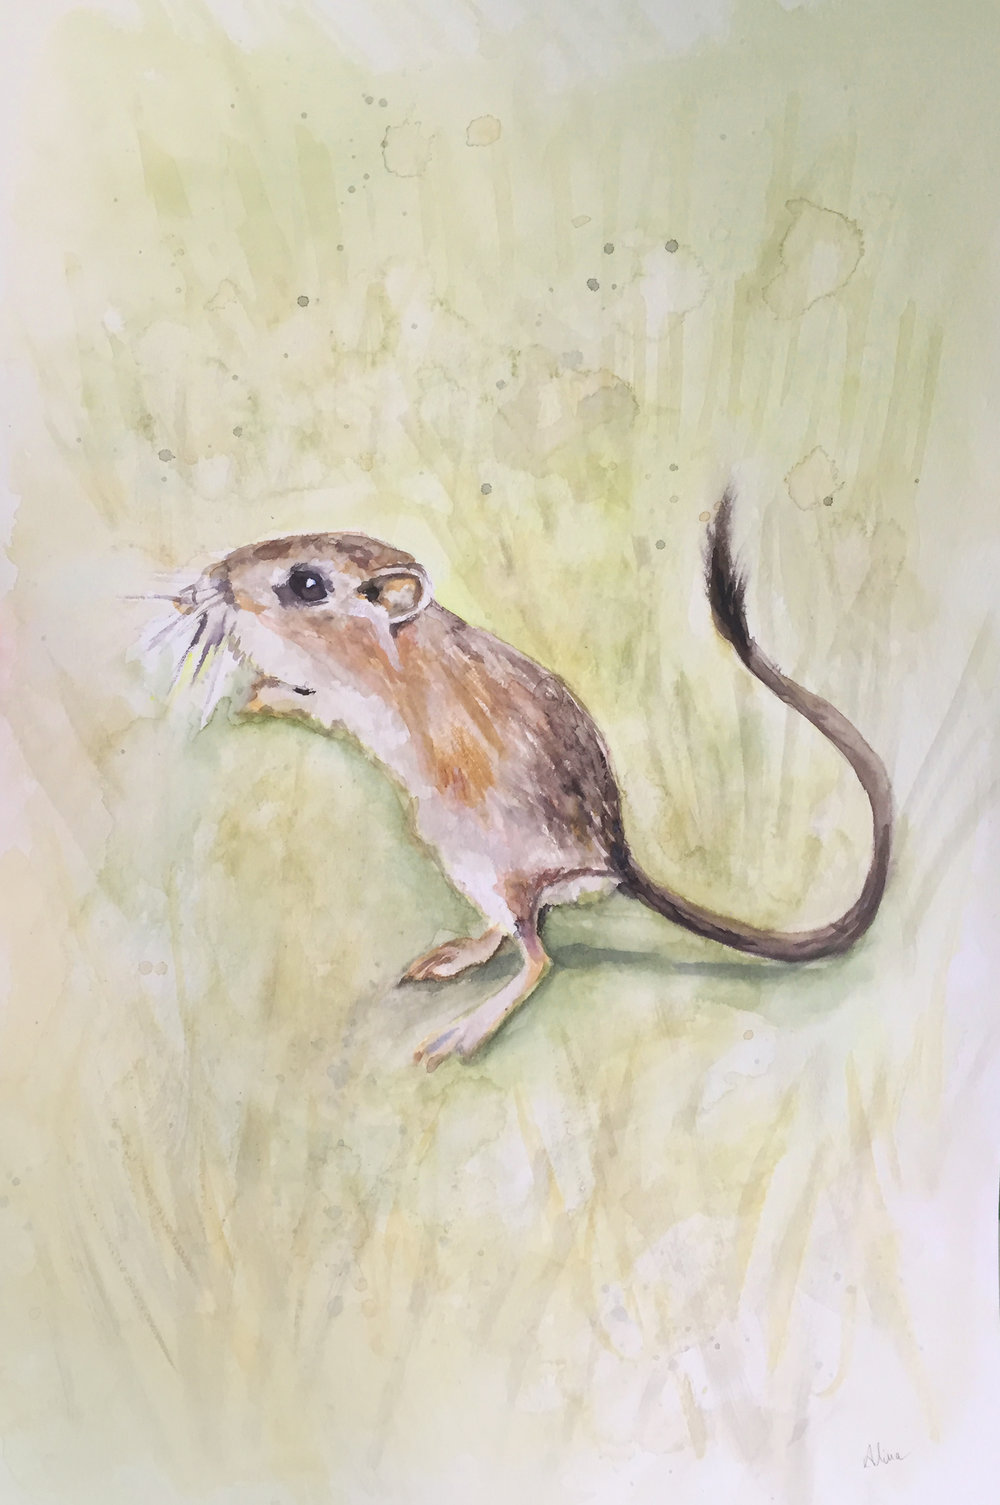 RAT (Giant Kangaroo Rat)